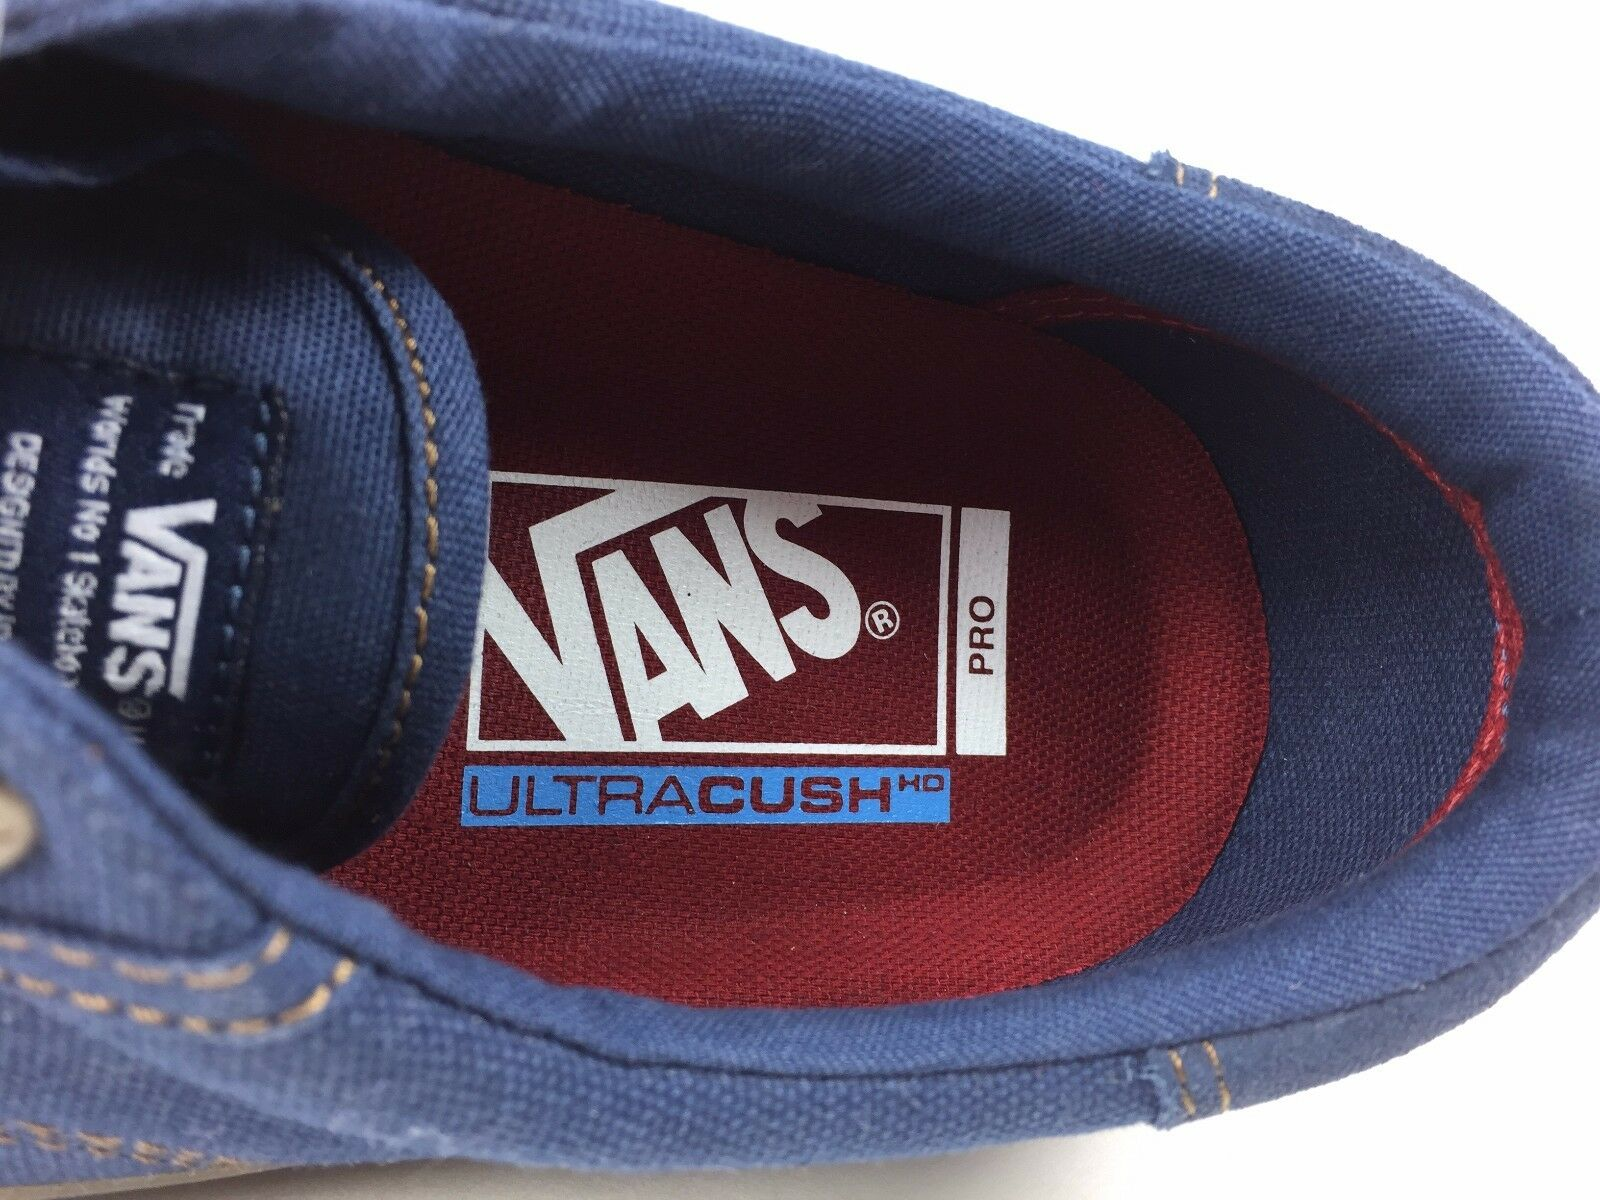 bbc88335cf41 VANS Rowley Solos Pro Size 6.5 Men Navy Blue Gum Canvas Suede Skate Shoe  for sale online